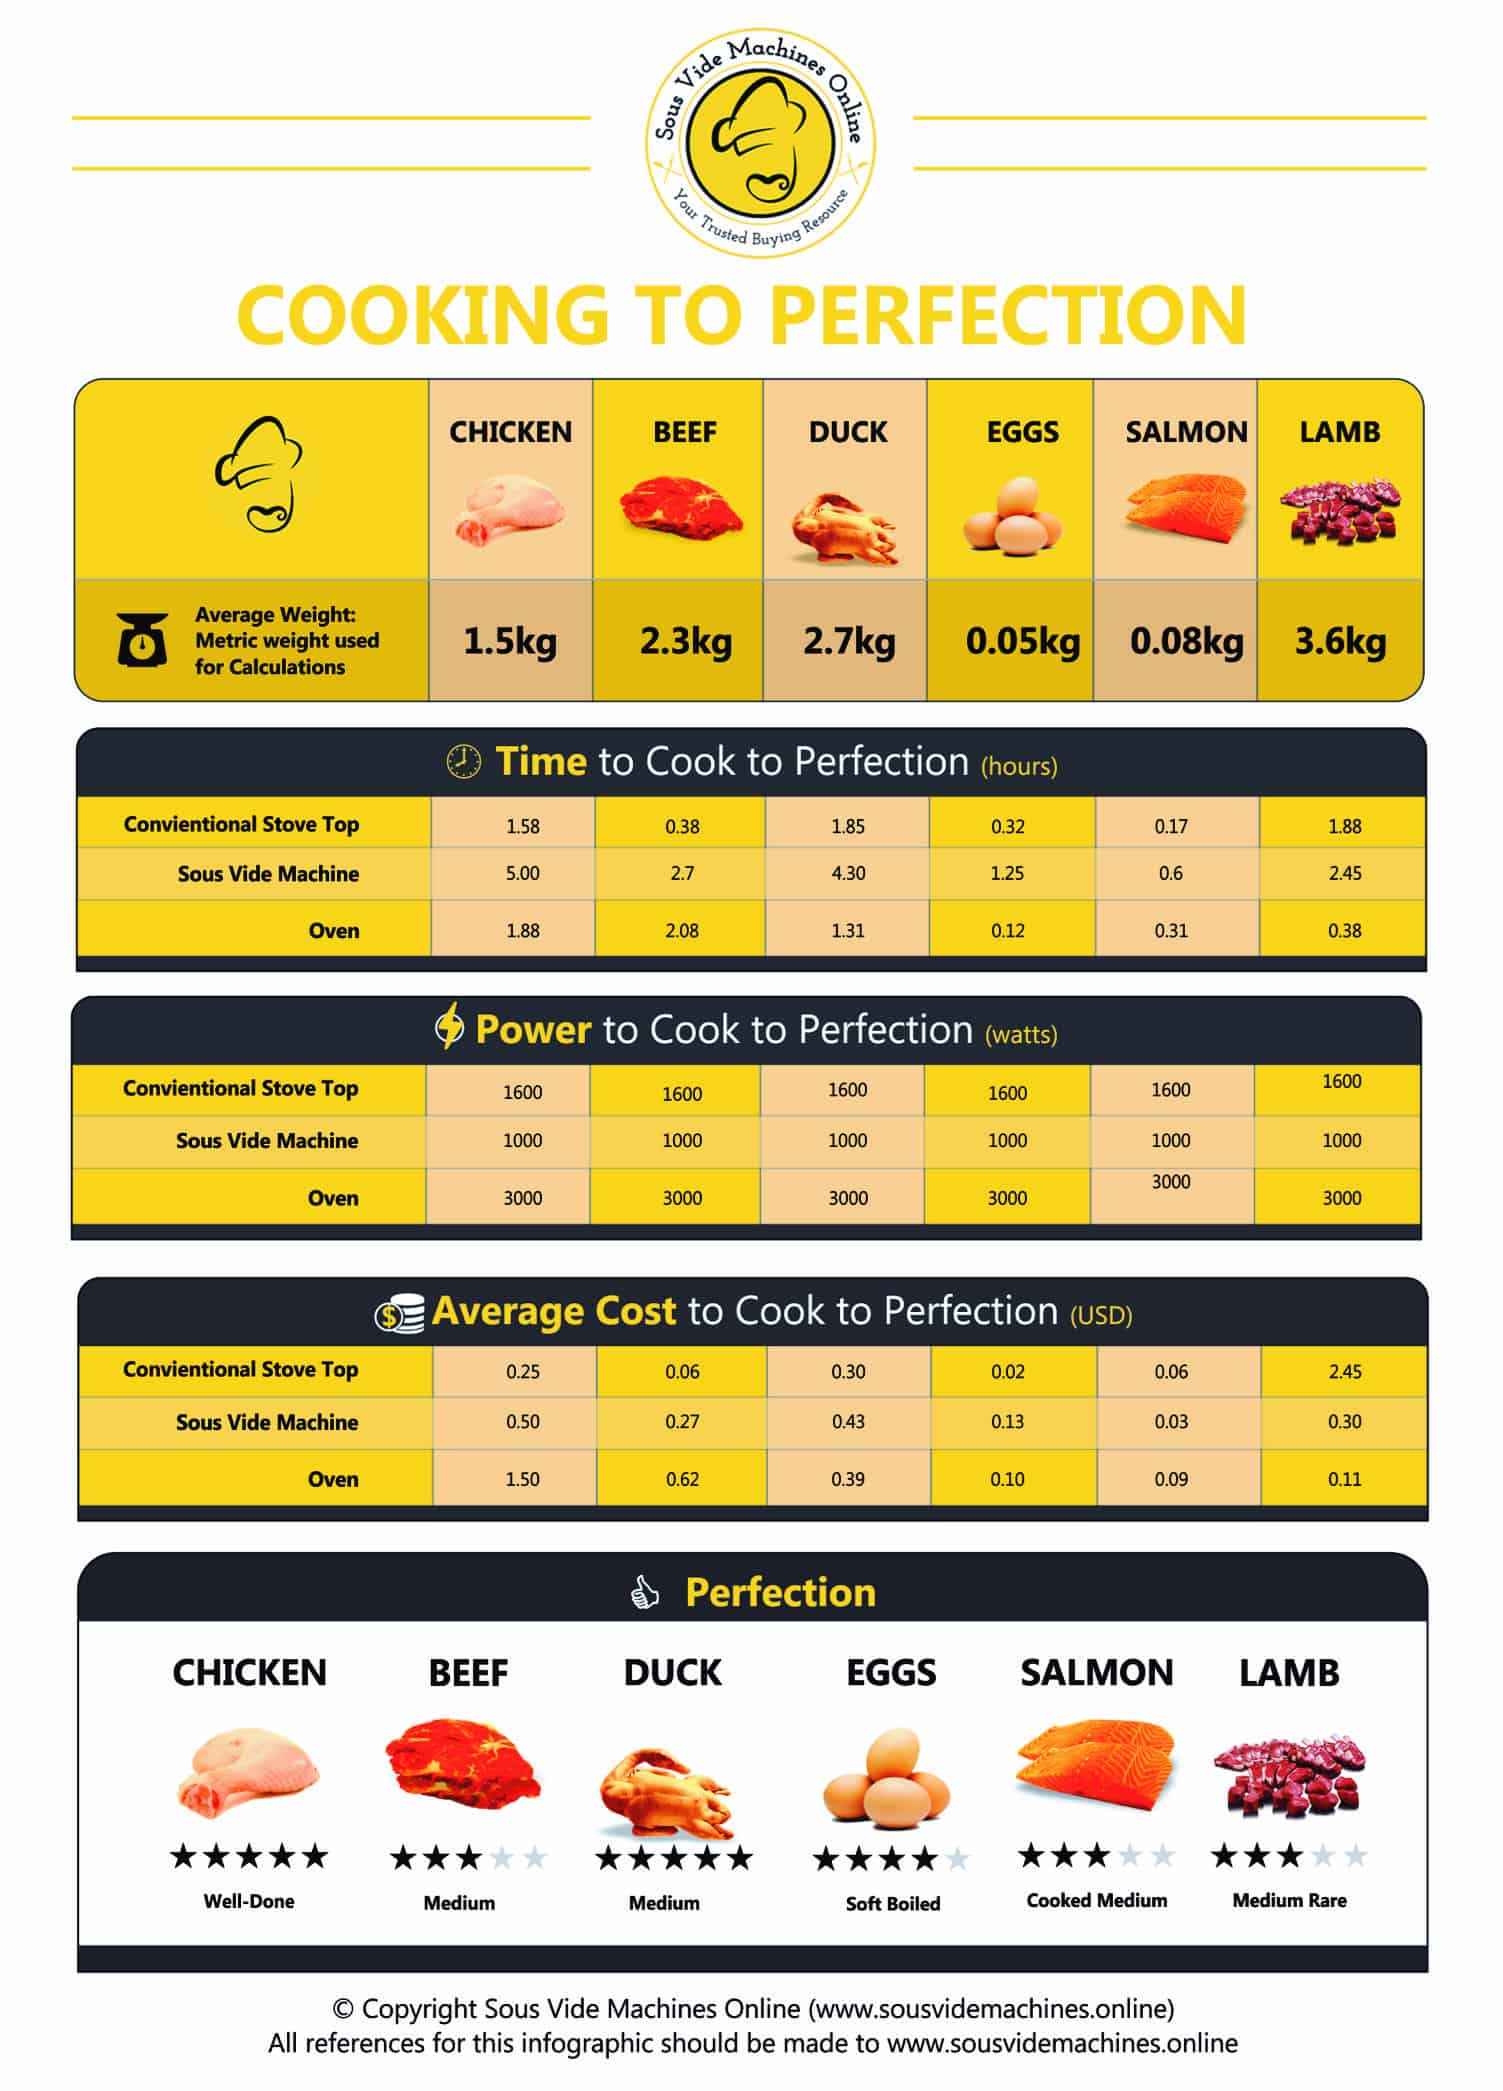 How to cook chicken to perfection